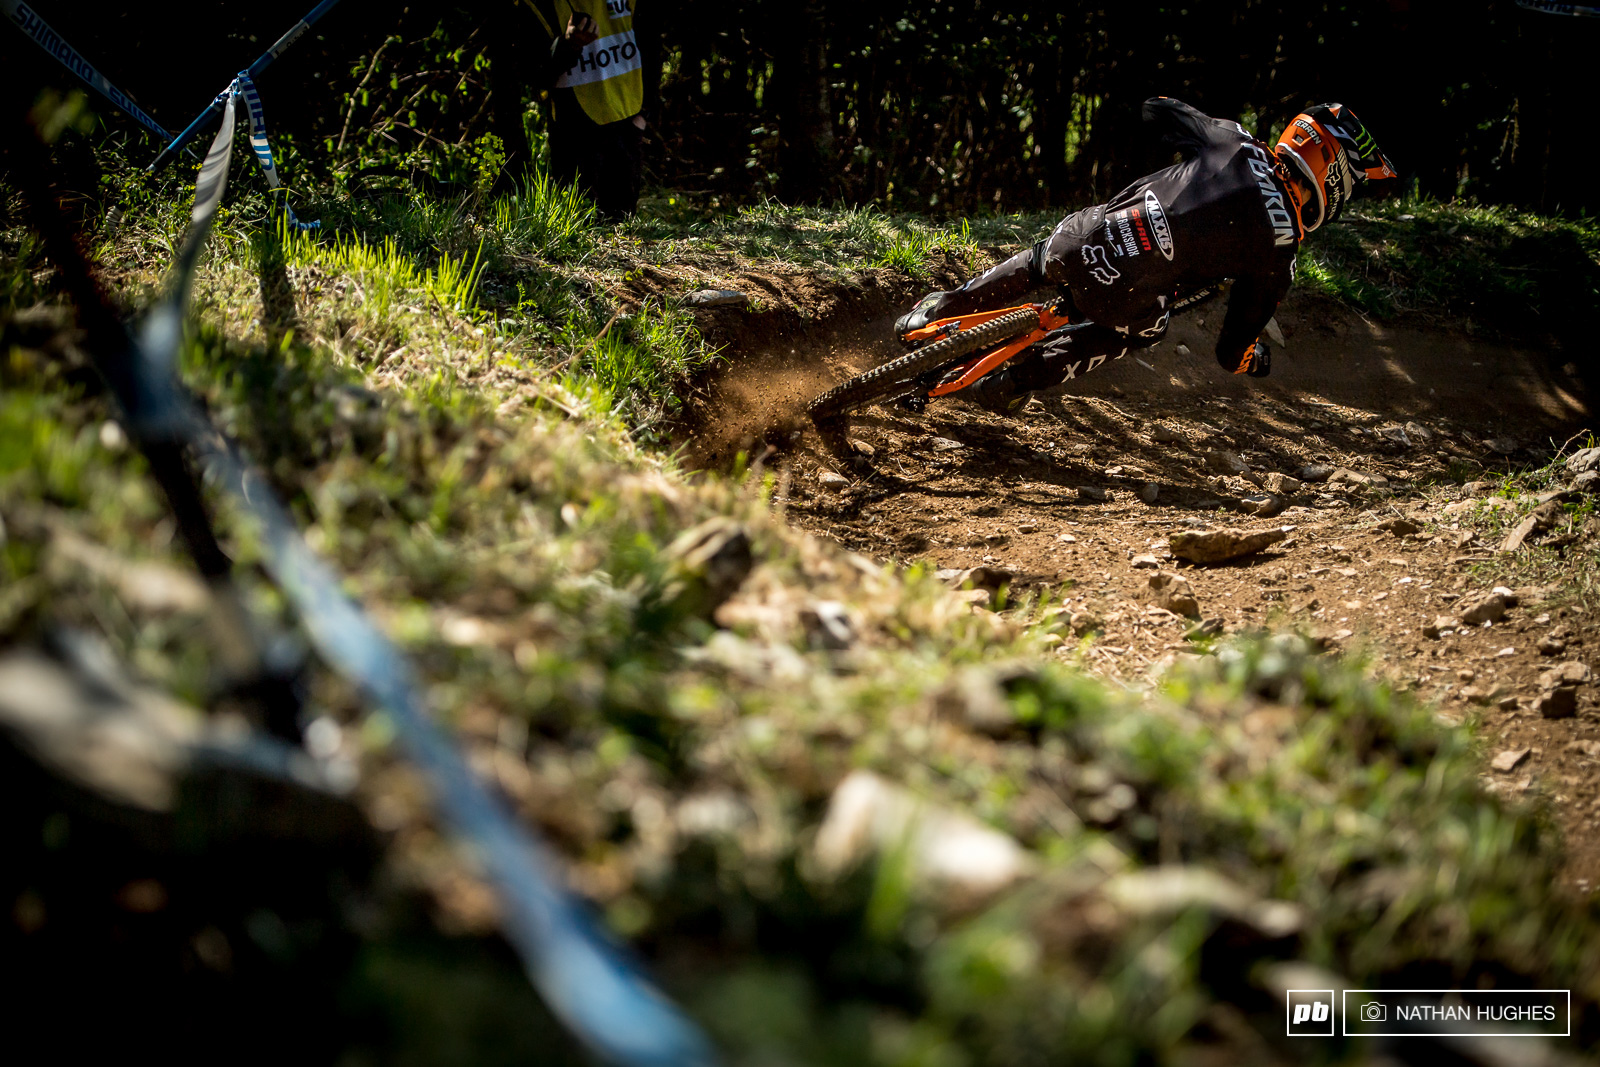 Connor Fearon may not have put down the quickest lap of the day but he definitely won practice in more than a few sections riding like an absolute animal.